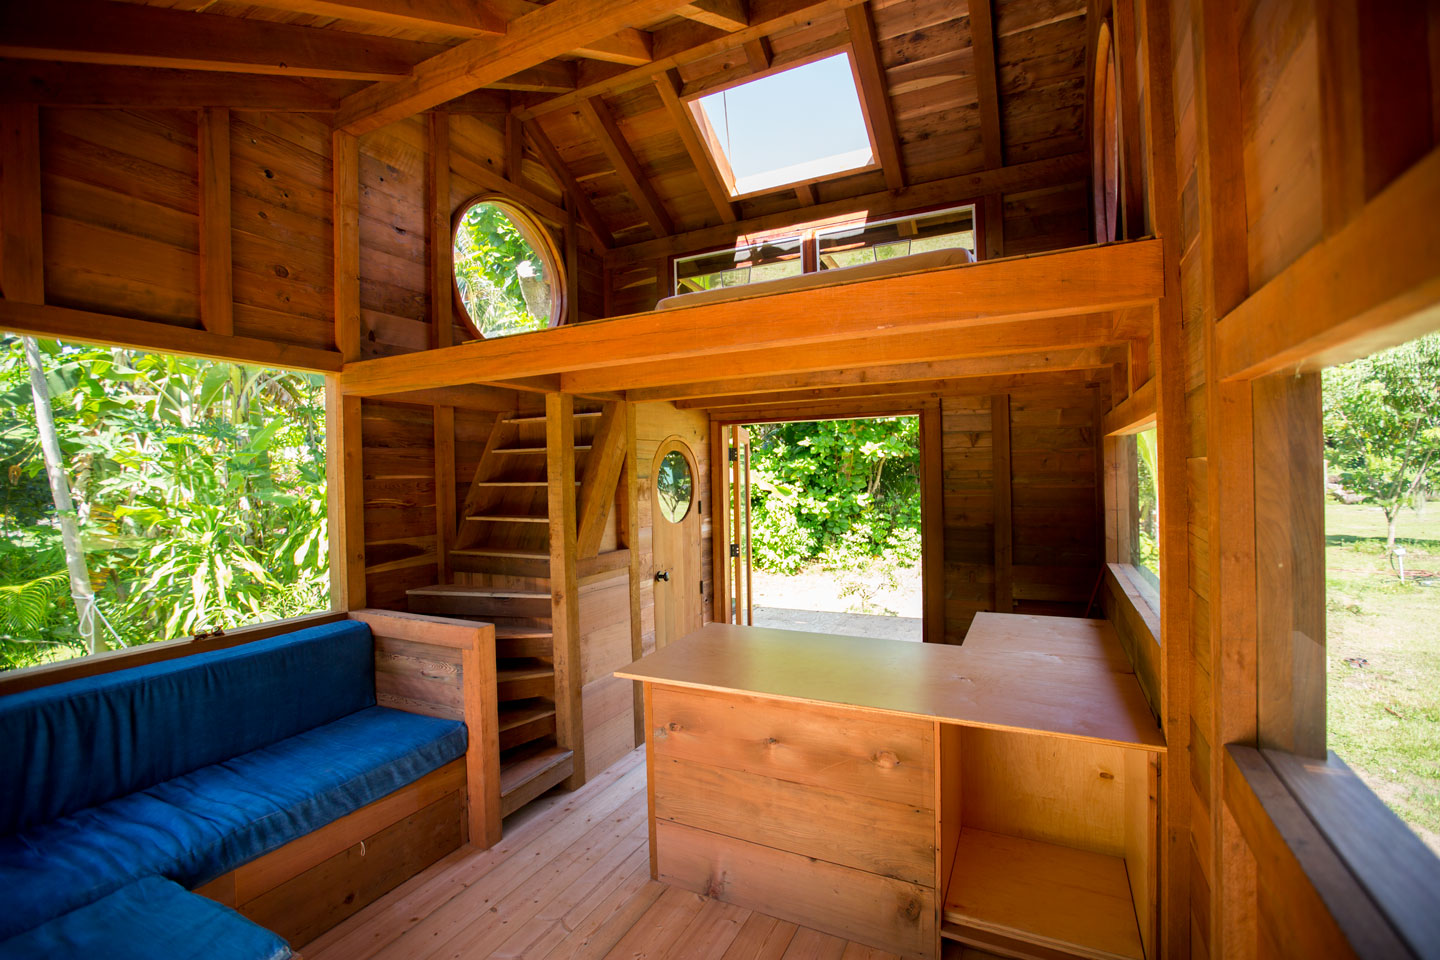 Man Cave Fort Nelson : Jay nelson's new tiny house in hawaii the shelter blog